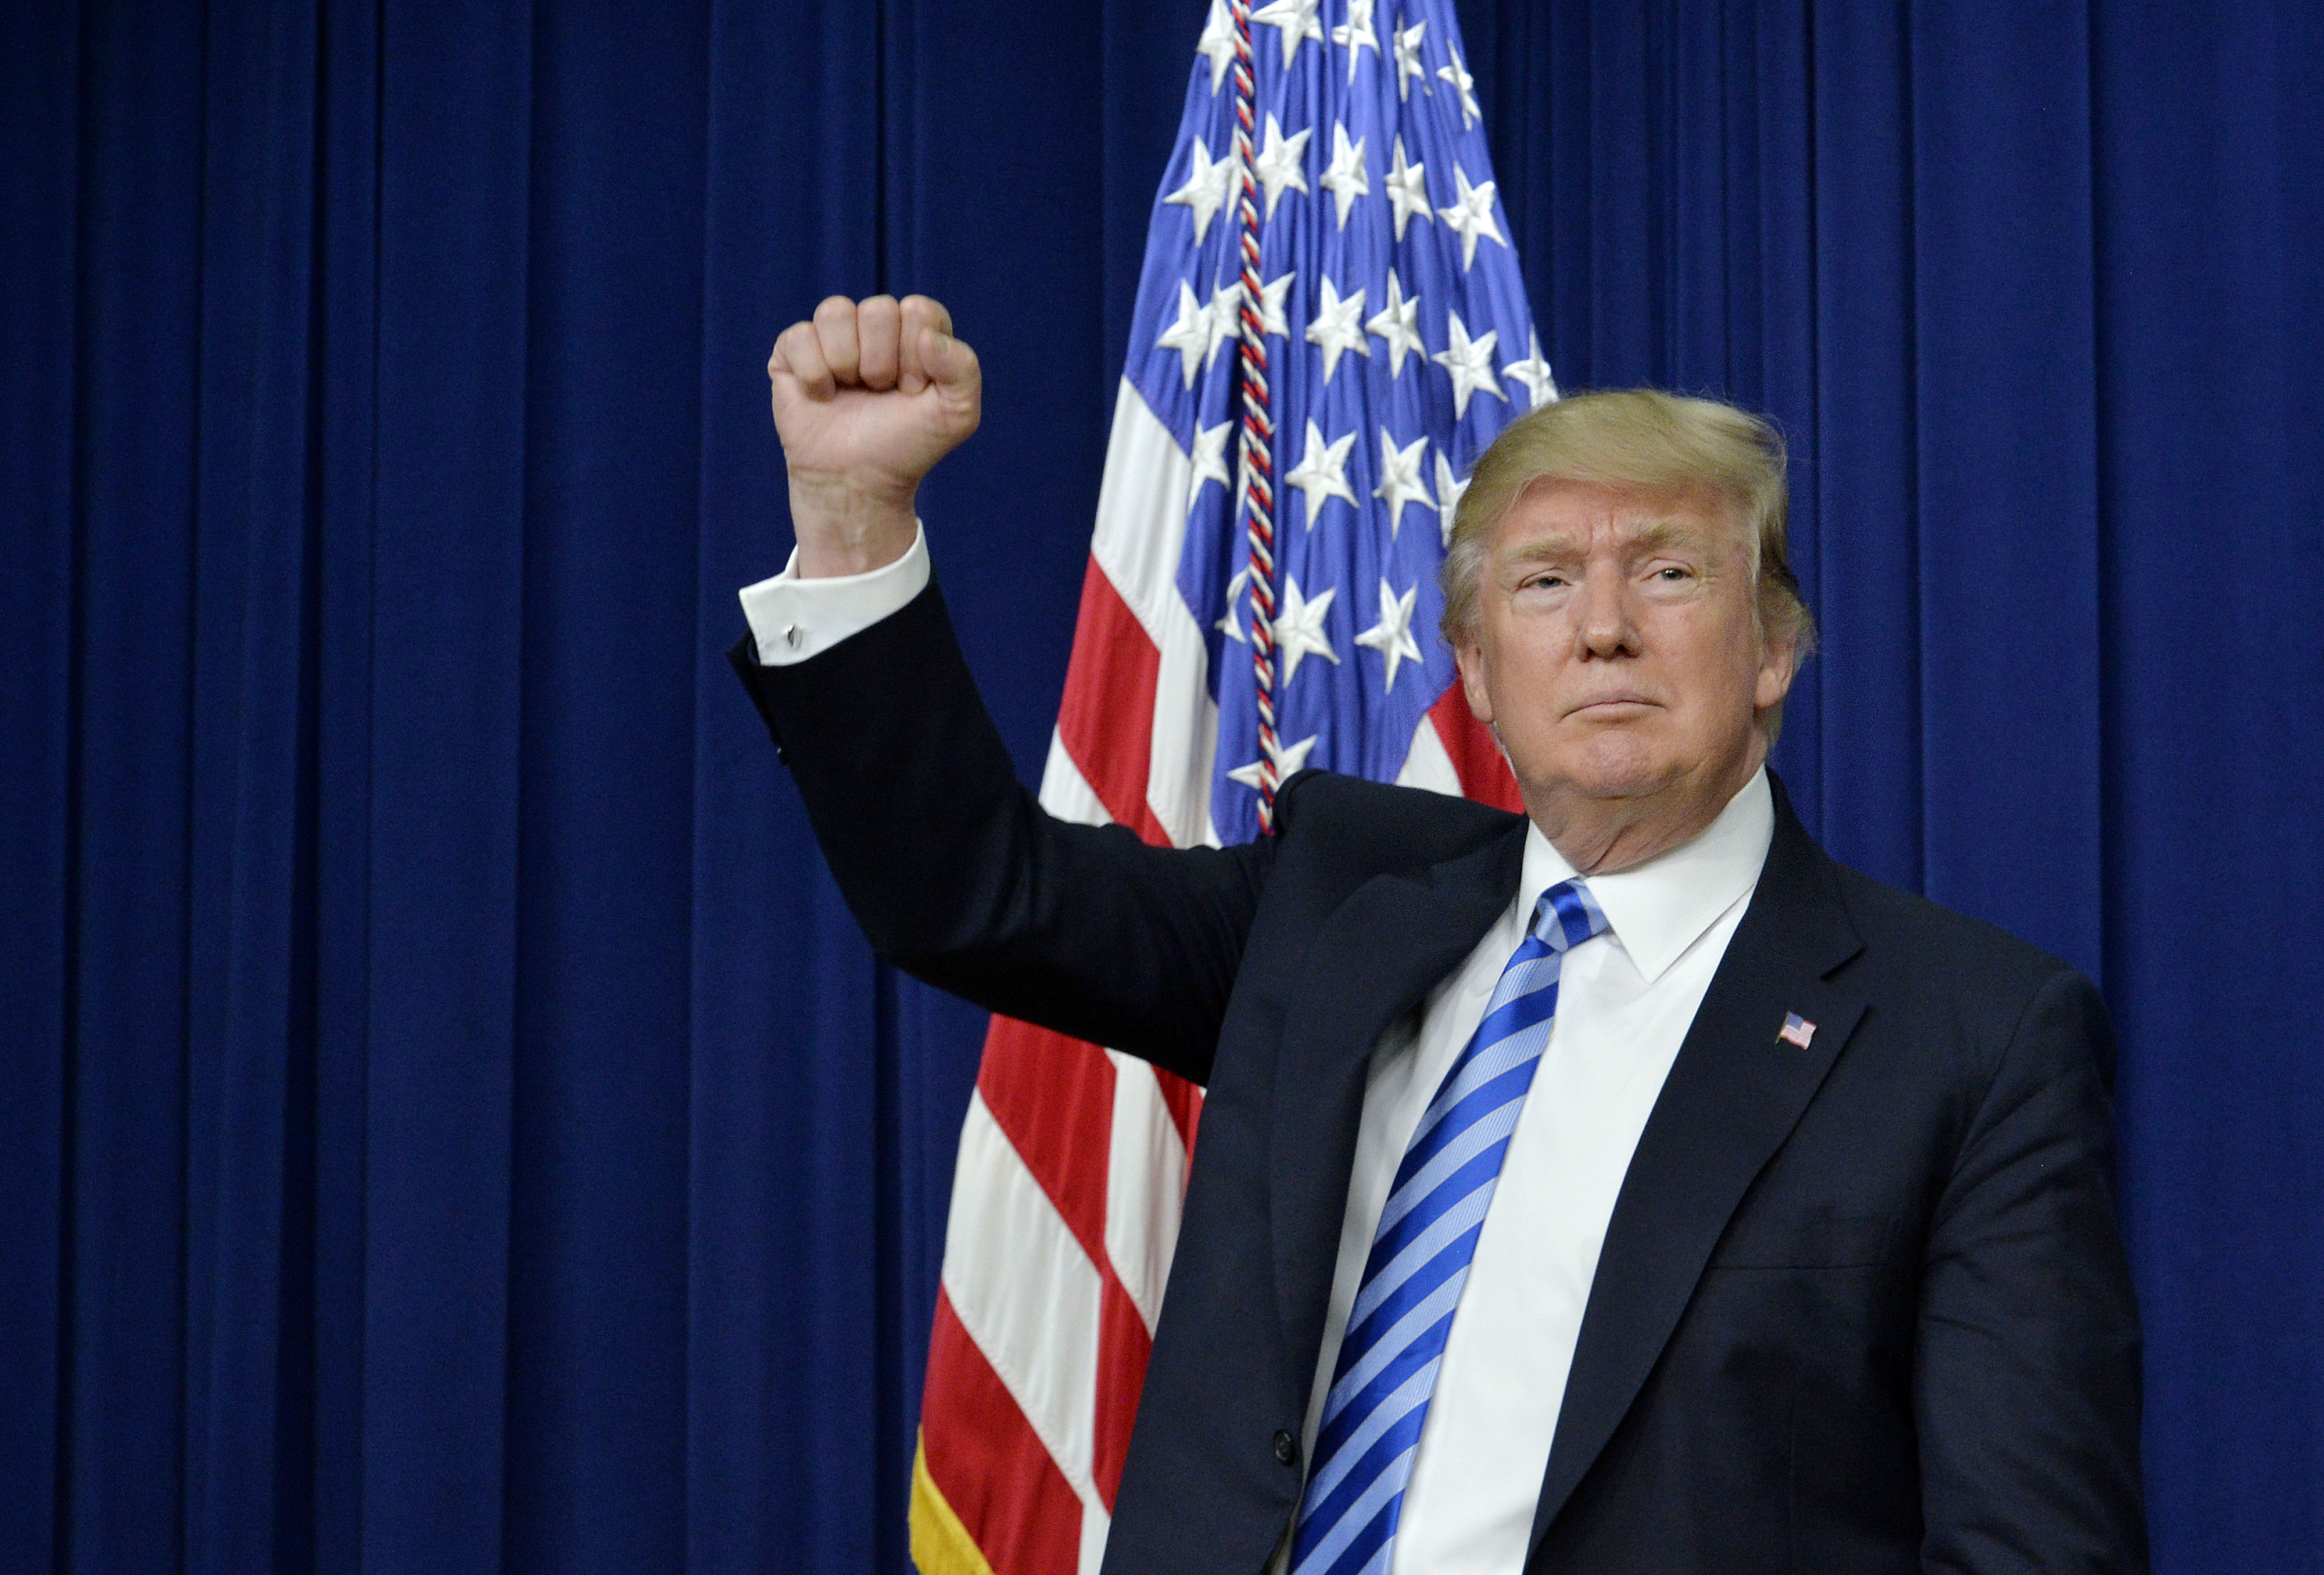 President Trump Hosts CEO Town Hall On America Business Climate At White House